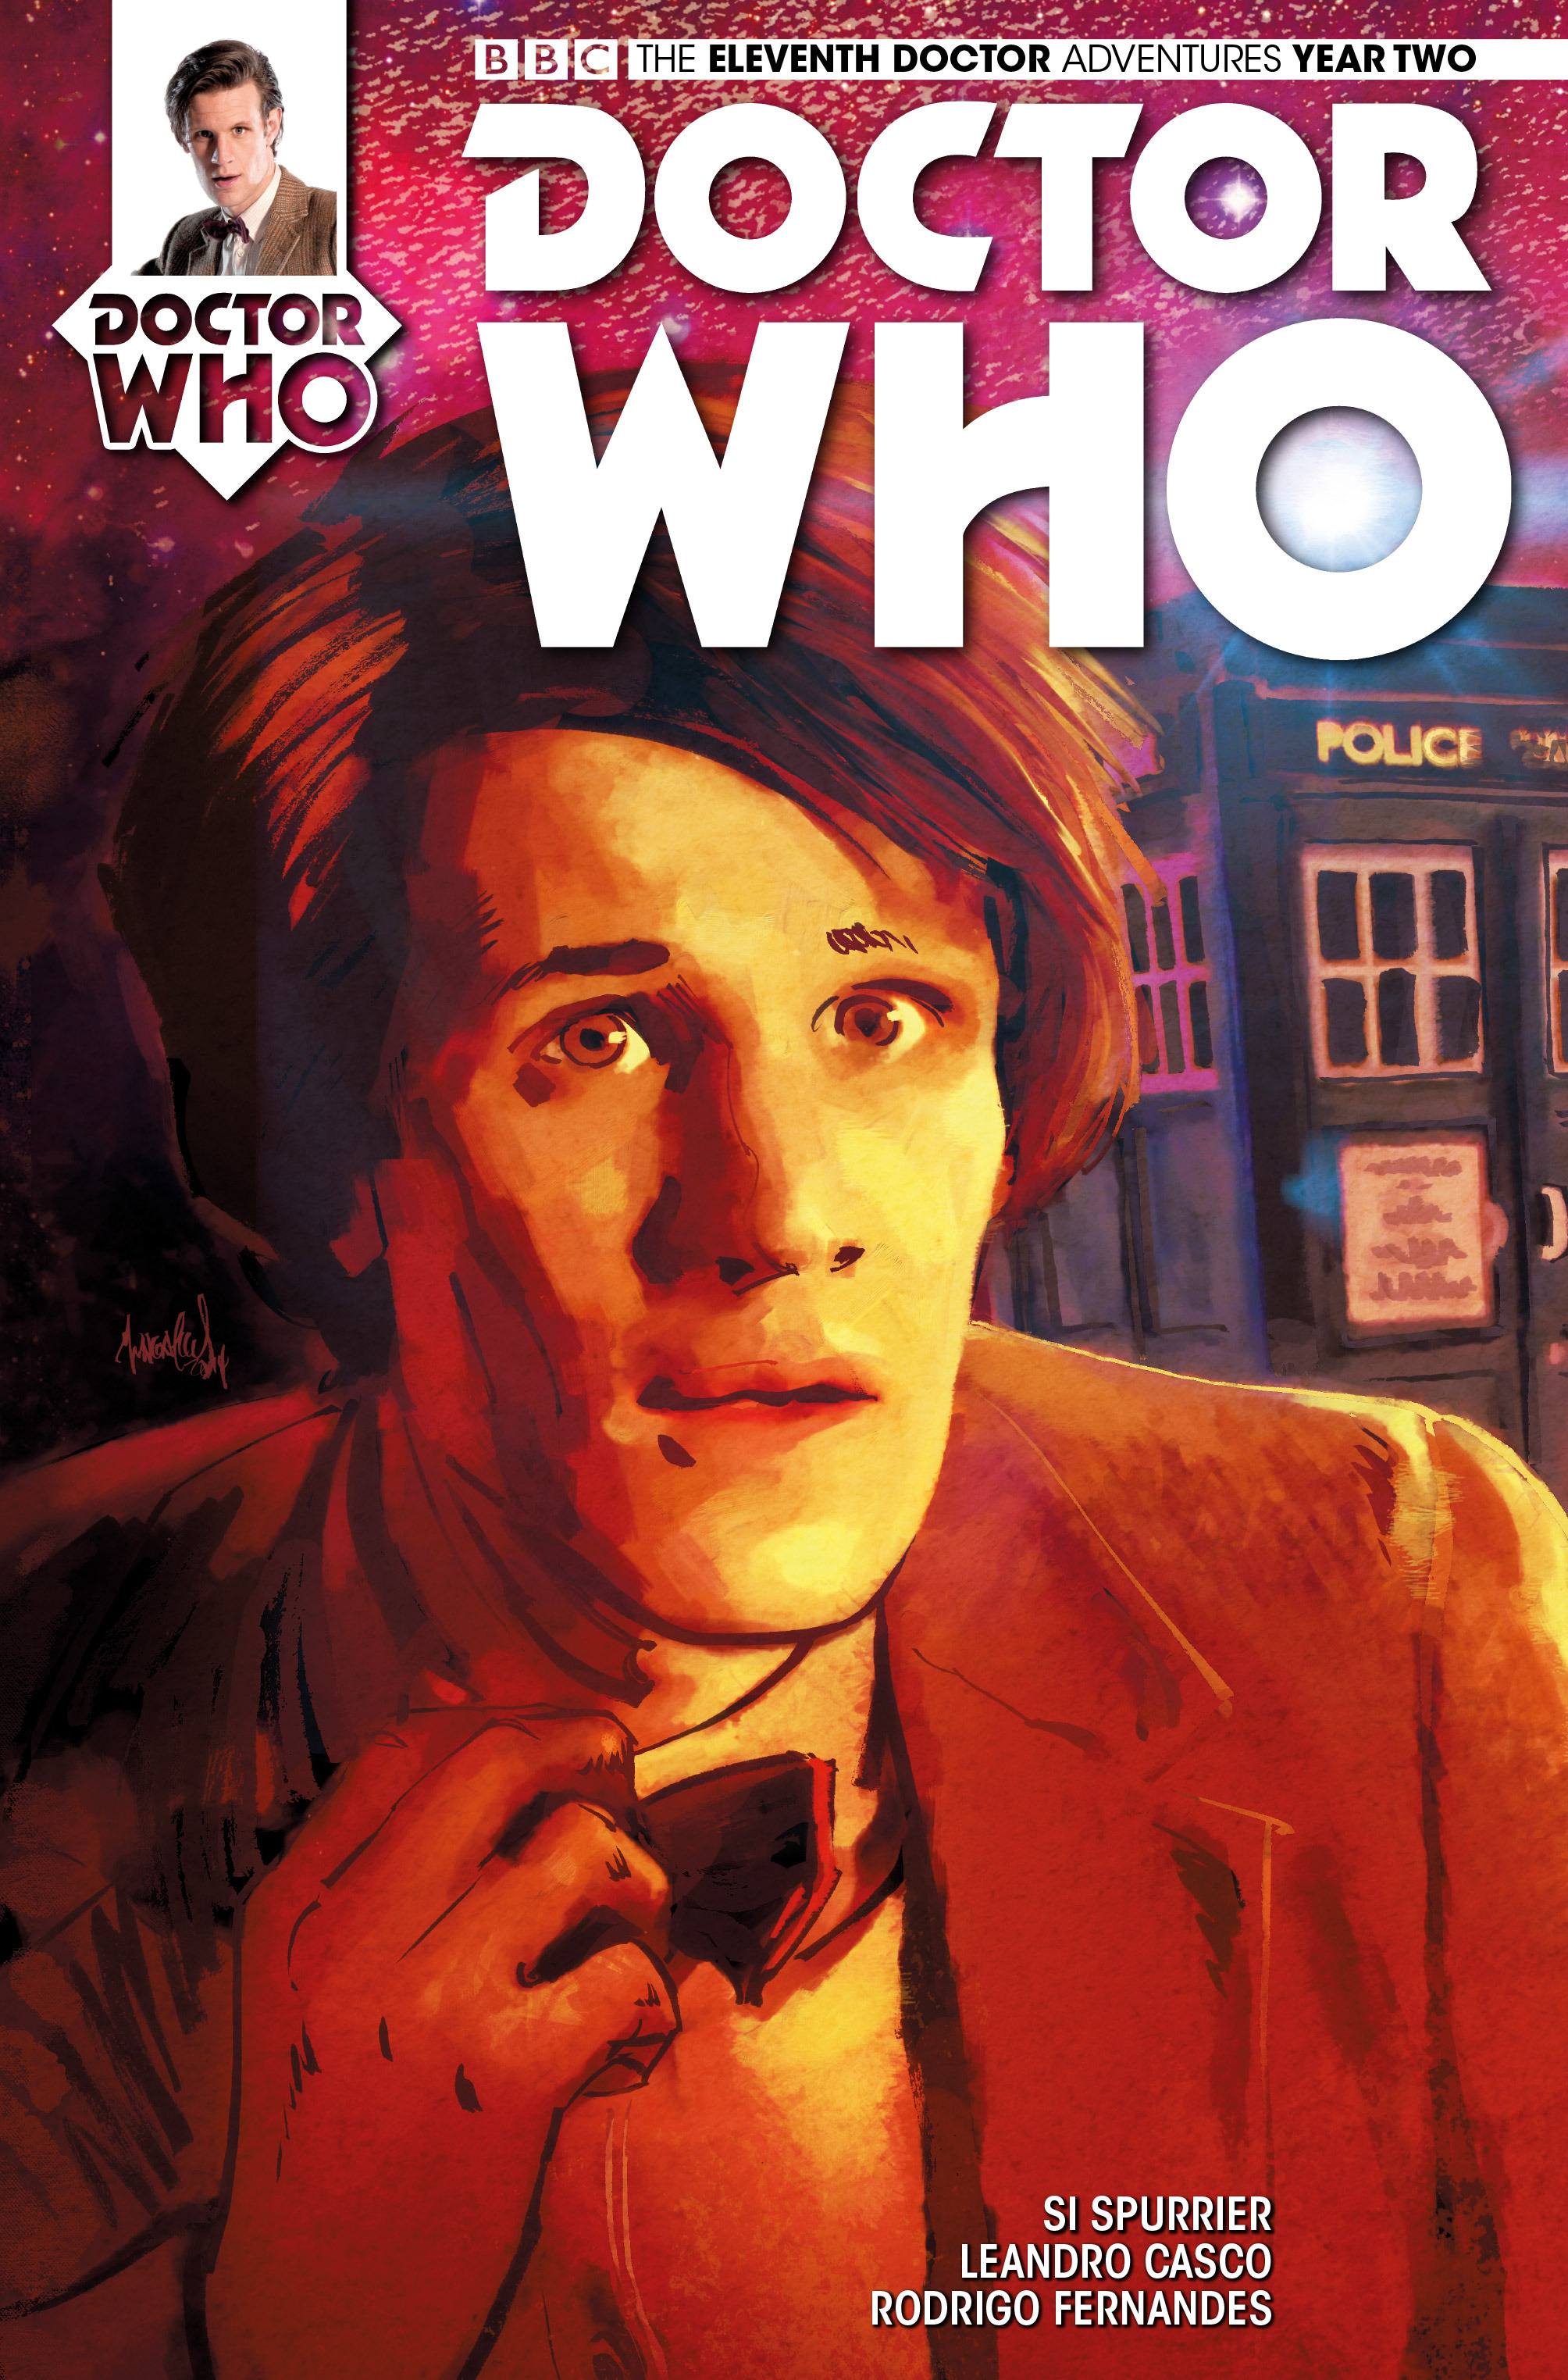 Doctor Who: The Eleventh Doctor Year Two 9 Page 1